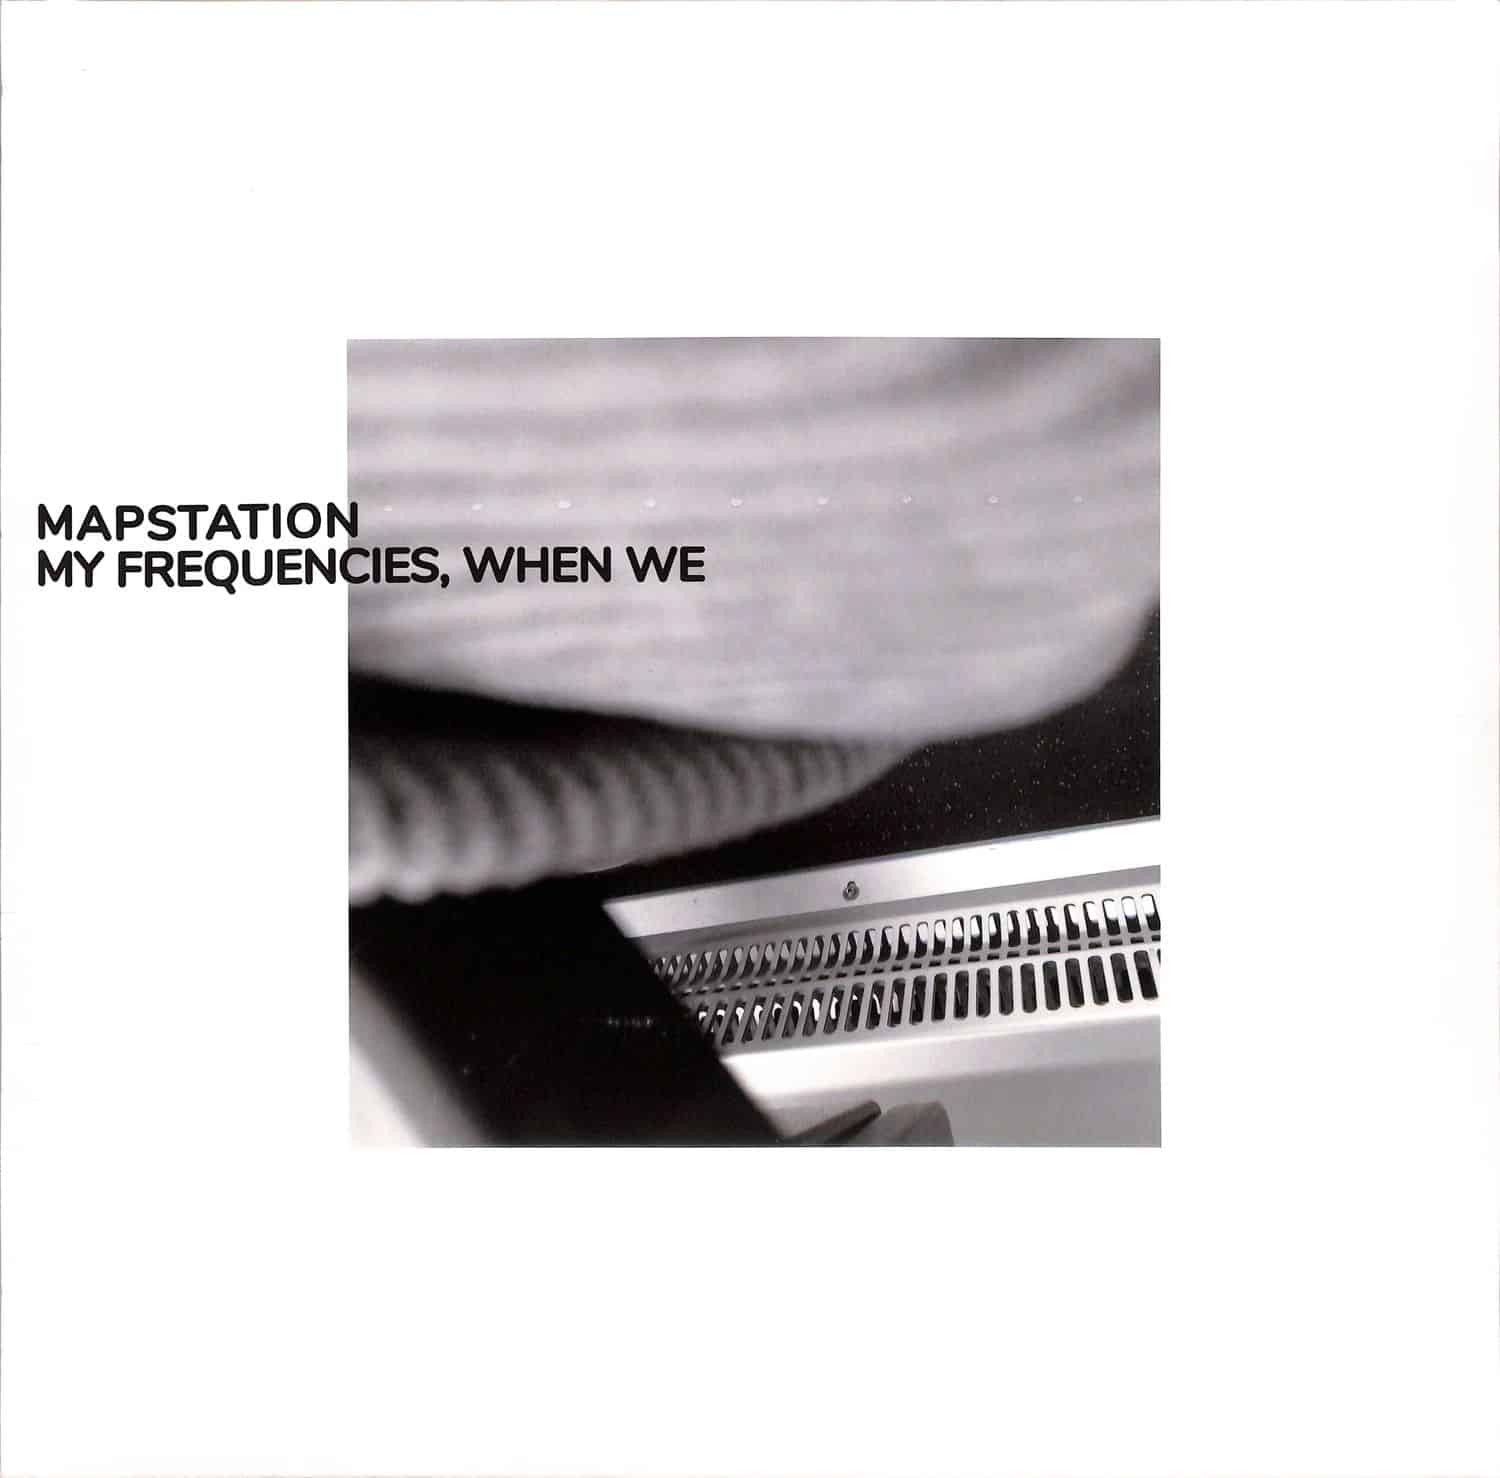 Mapstation - MY FREQUENCIES, WHEN WE